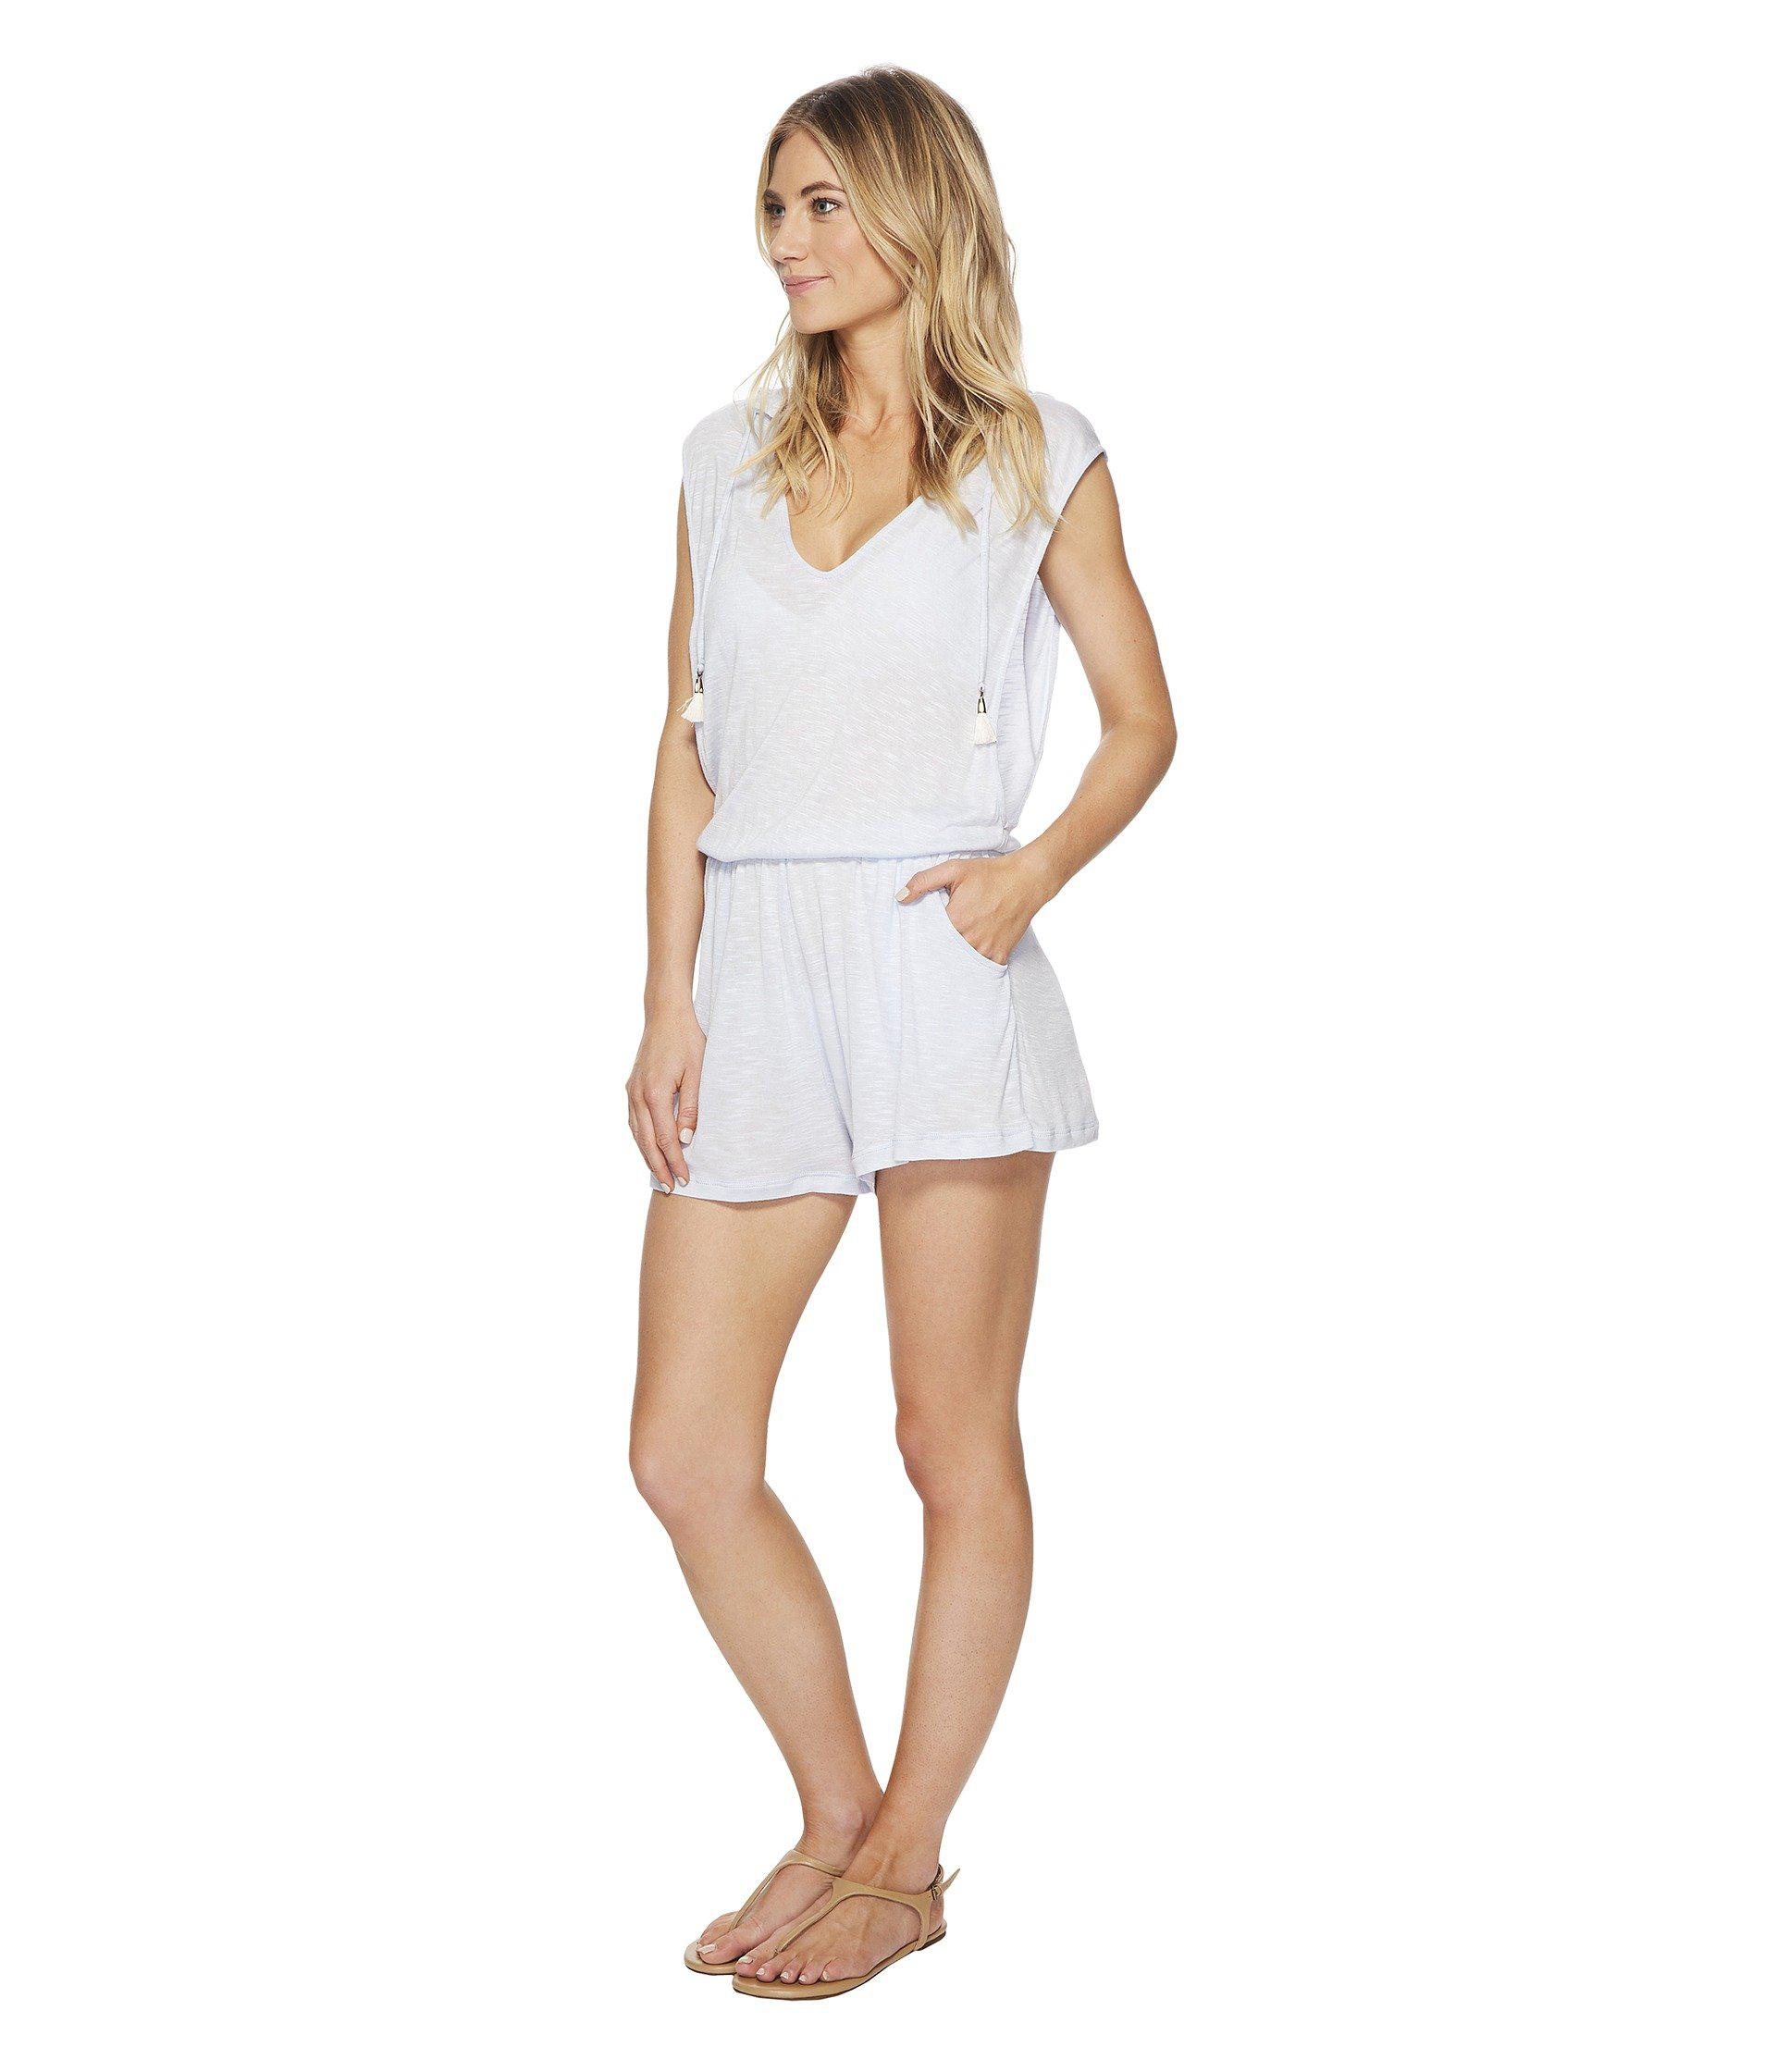 4ec7333aaebc3 Lyst - Lucky Brand Solid Attitude Hooded Romper Cover-up With Side Pockets  in White - Save 3%